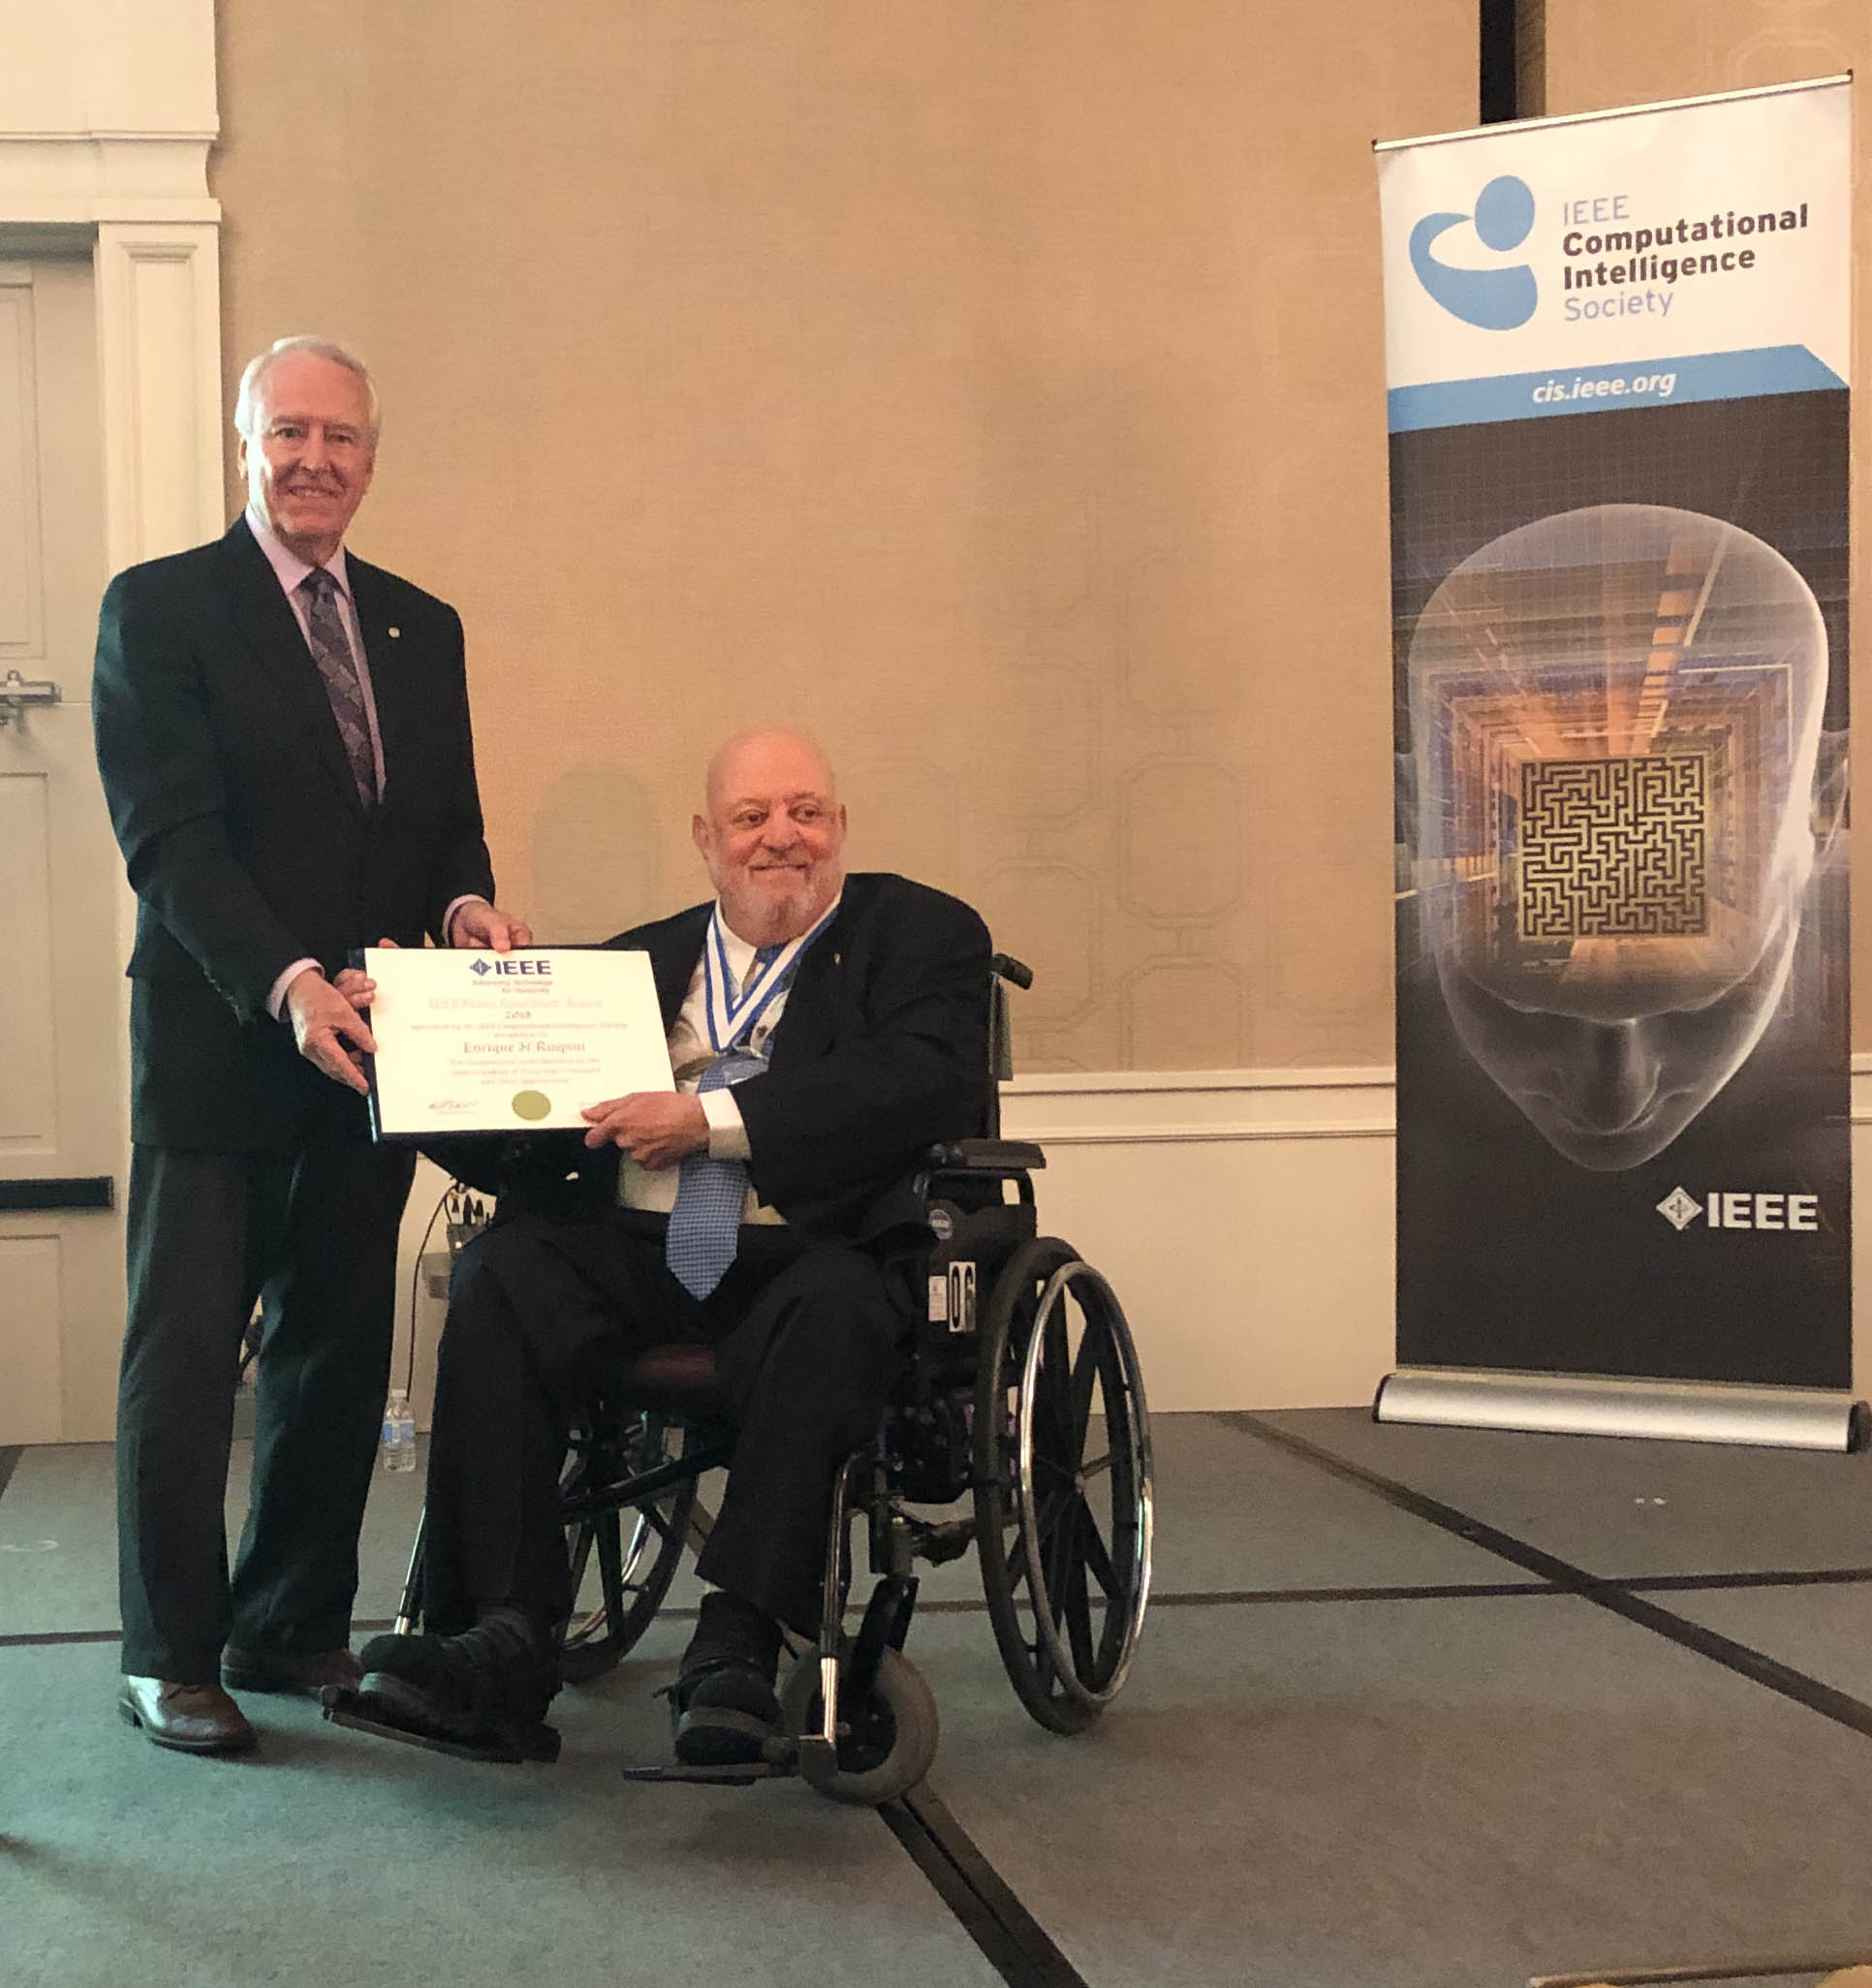 Dr. Ruspini is the recipient of the 2018 IEEE Frank Rosenblatt Technical Field Award